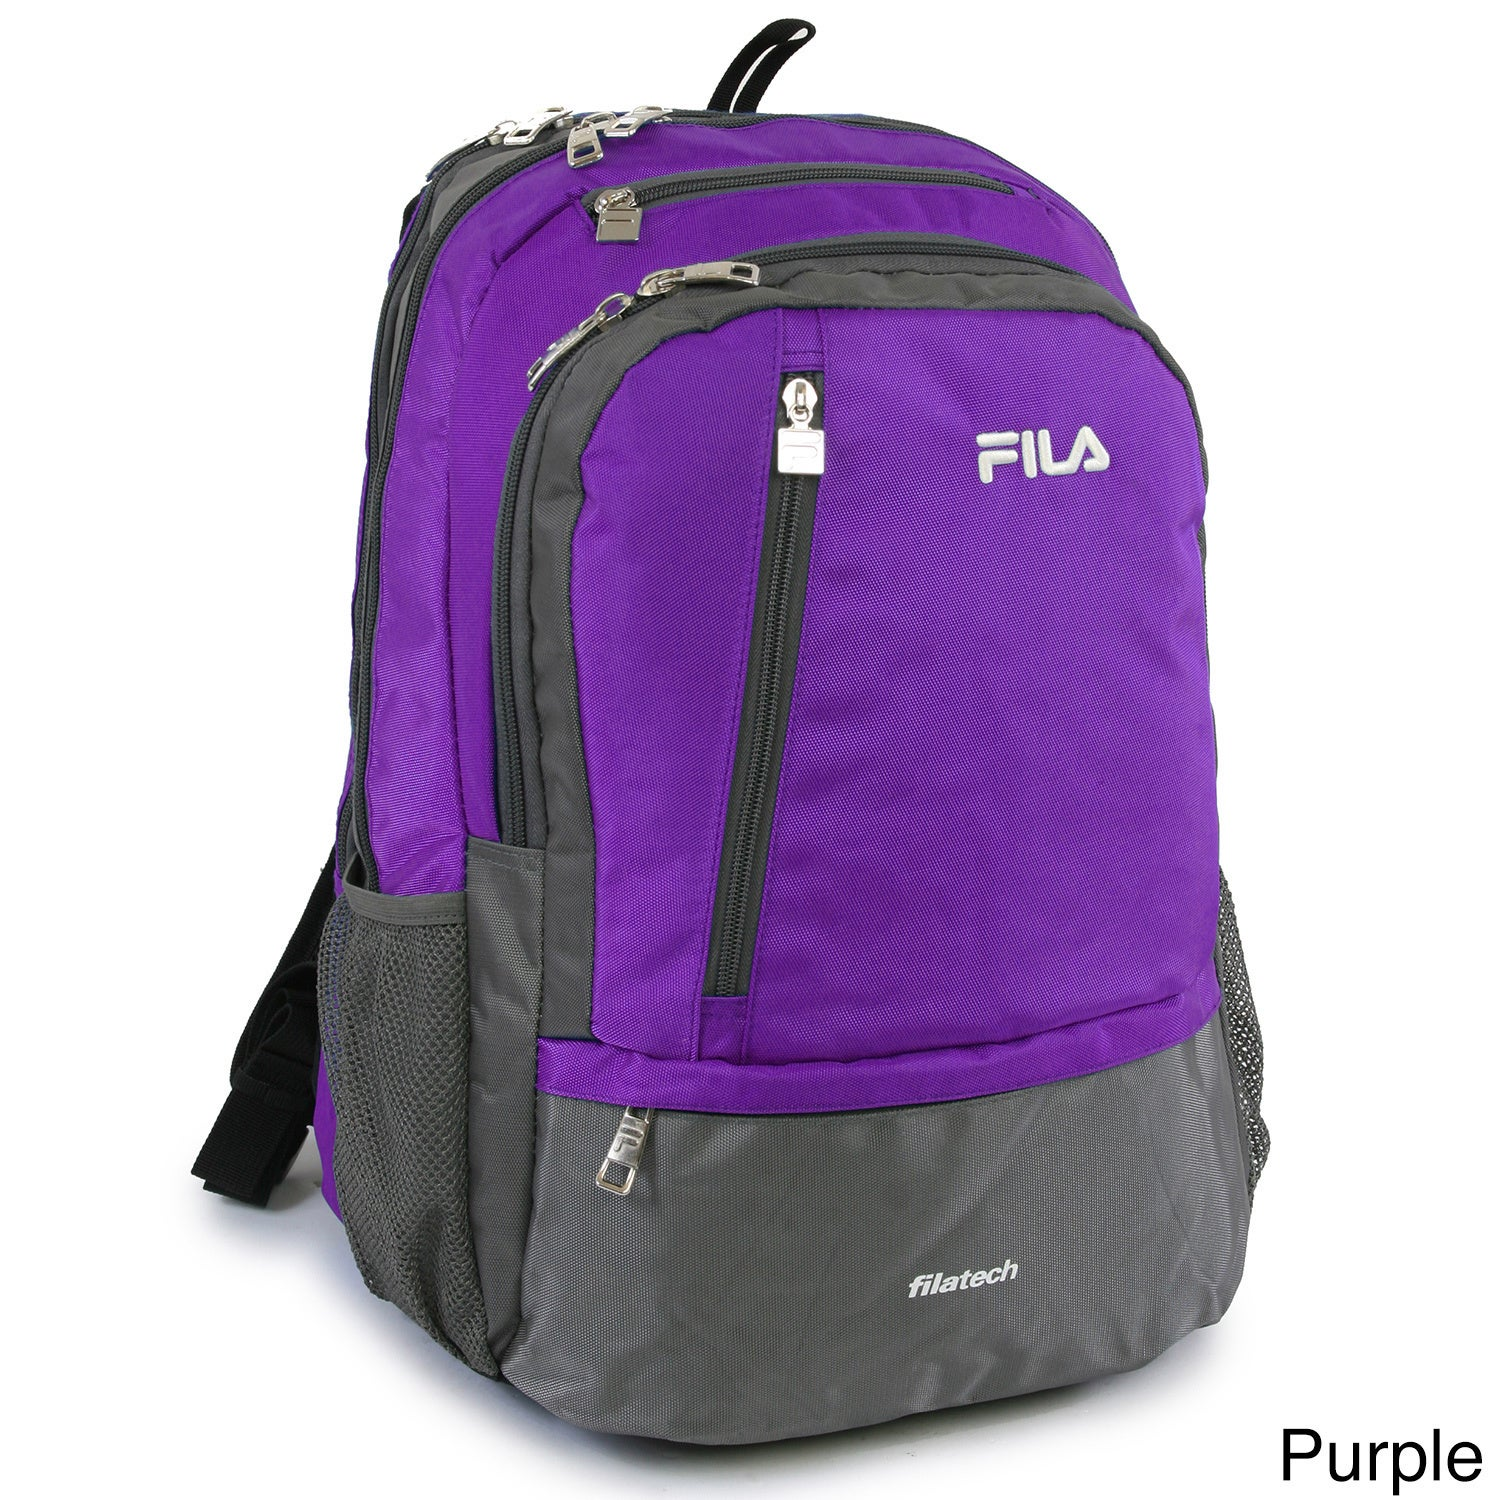 Large Rolling Backpacks For Girls- Fenix Toulouse Handball 2fd239fee6196